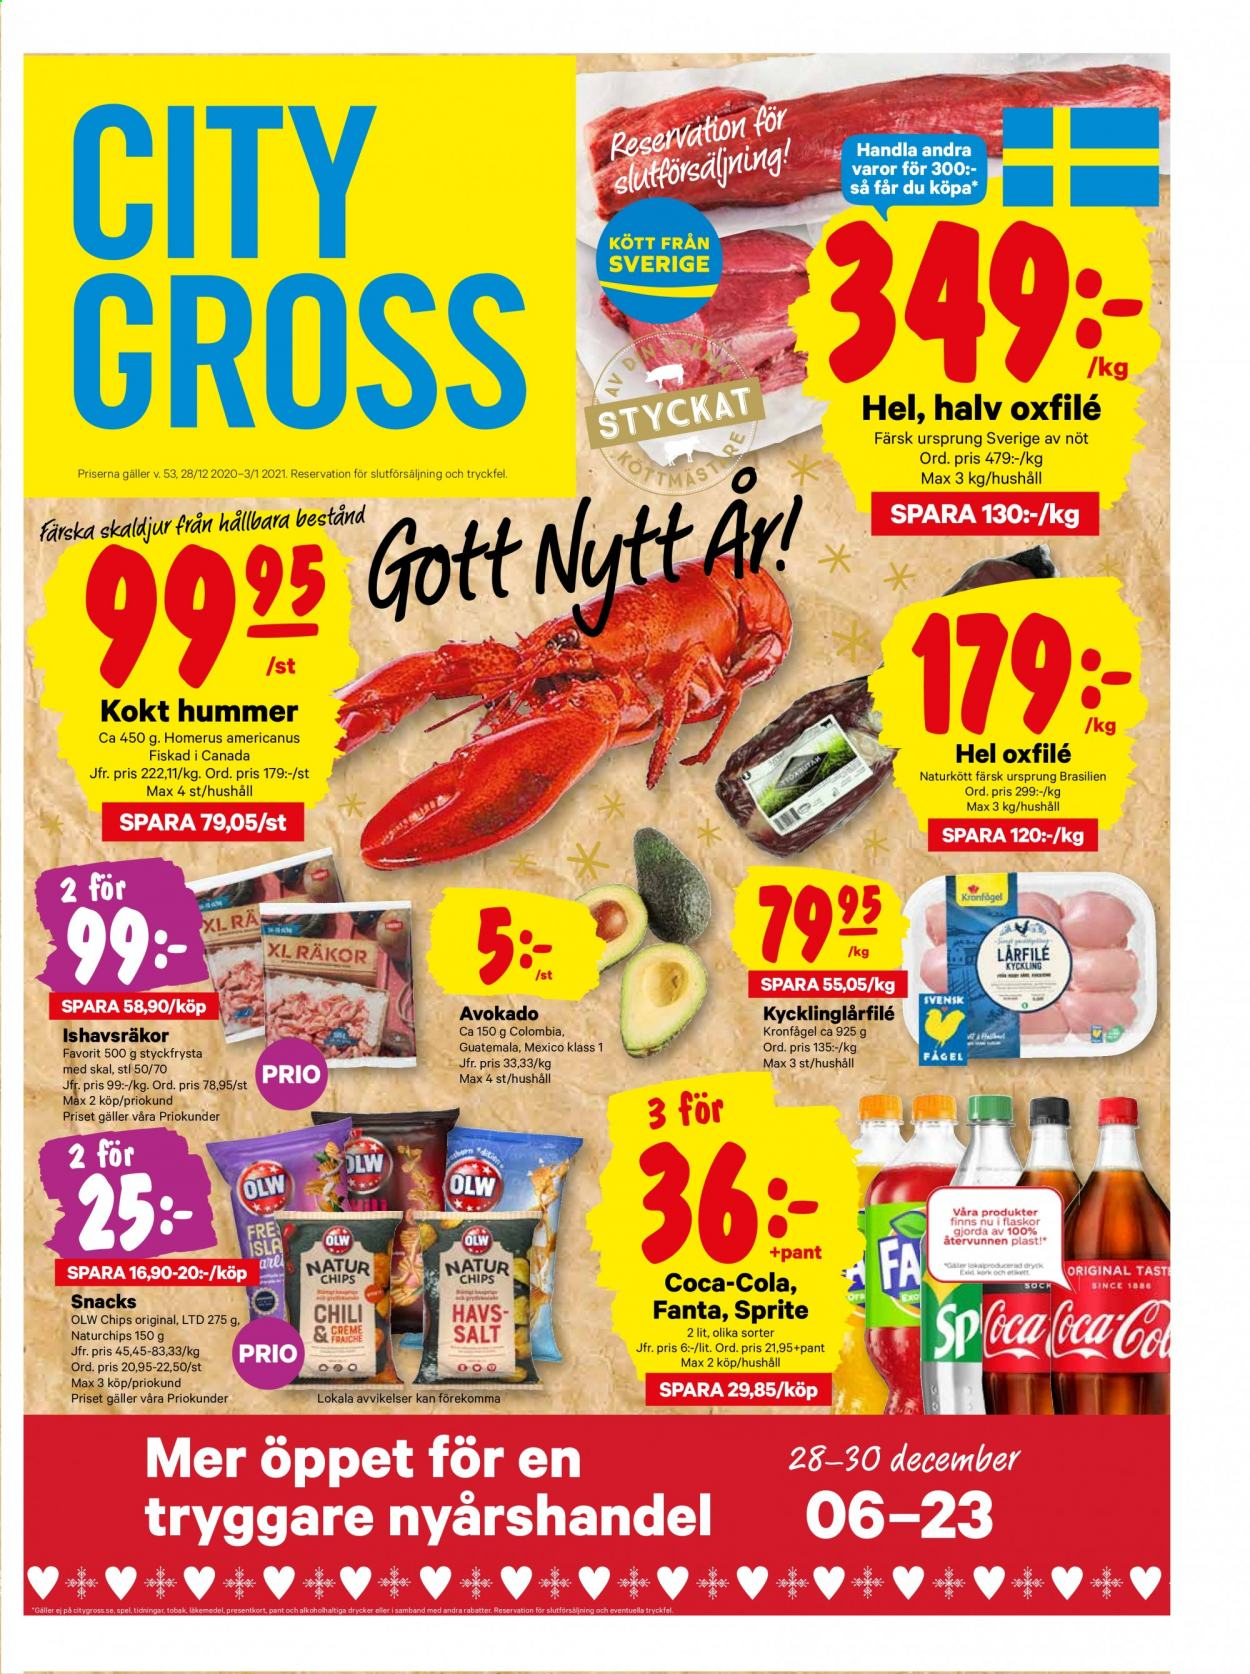 City Gross reklamblad - 29/12 2020 - 3/1 2021. Sida 1.